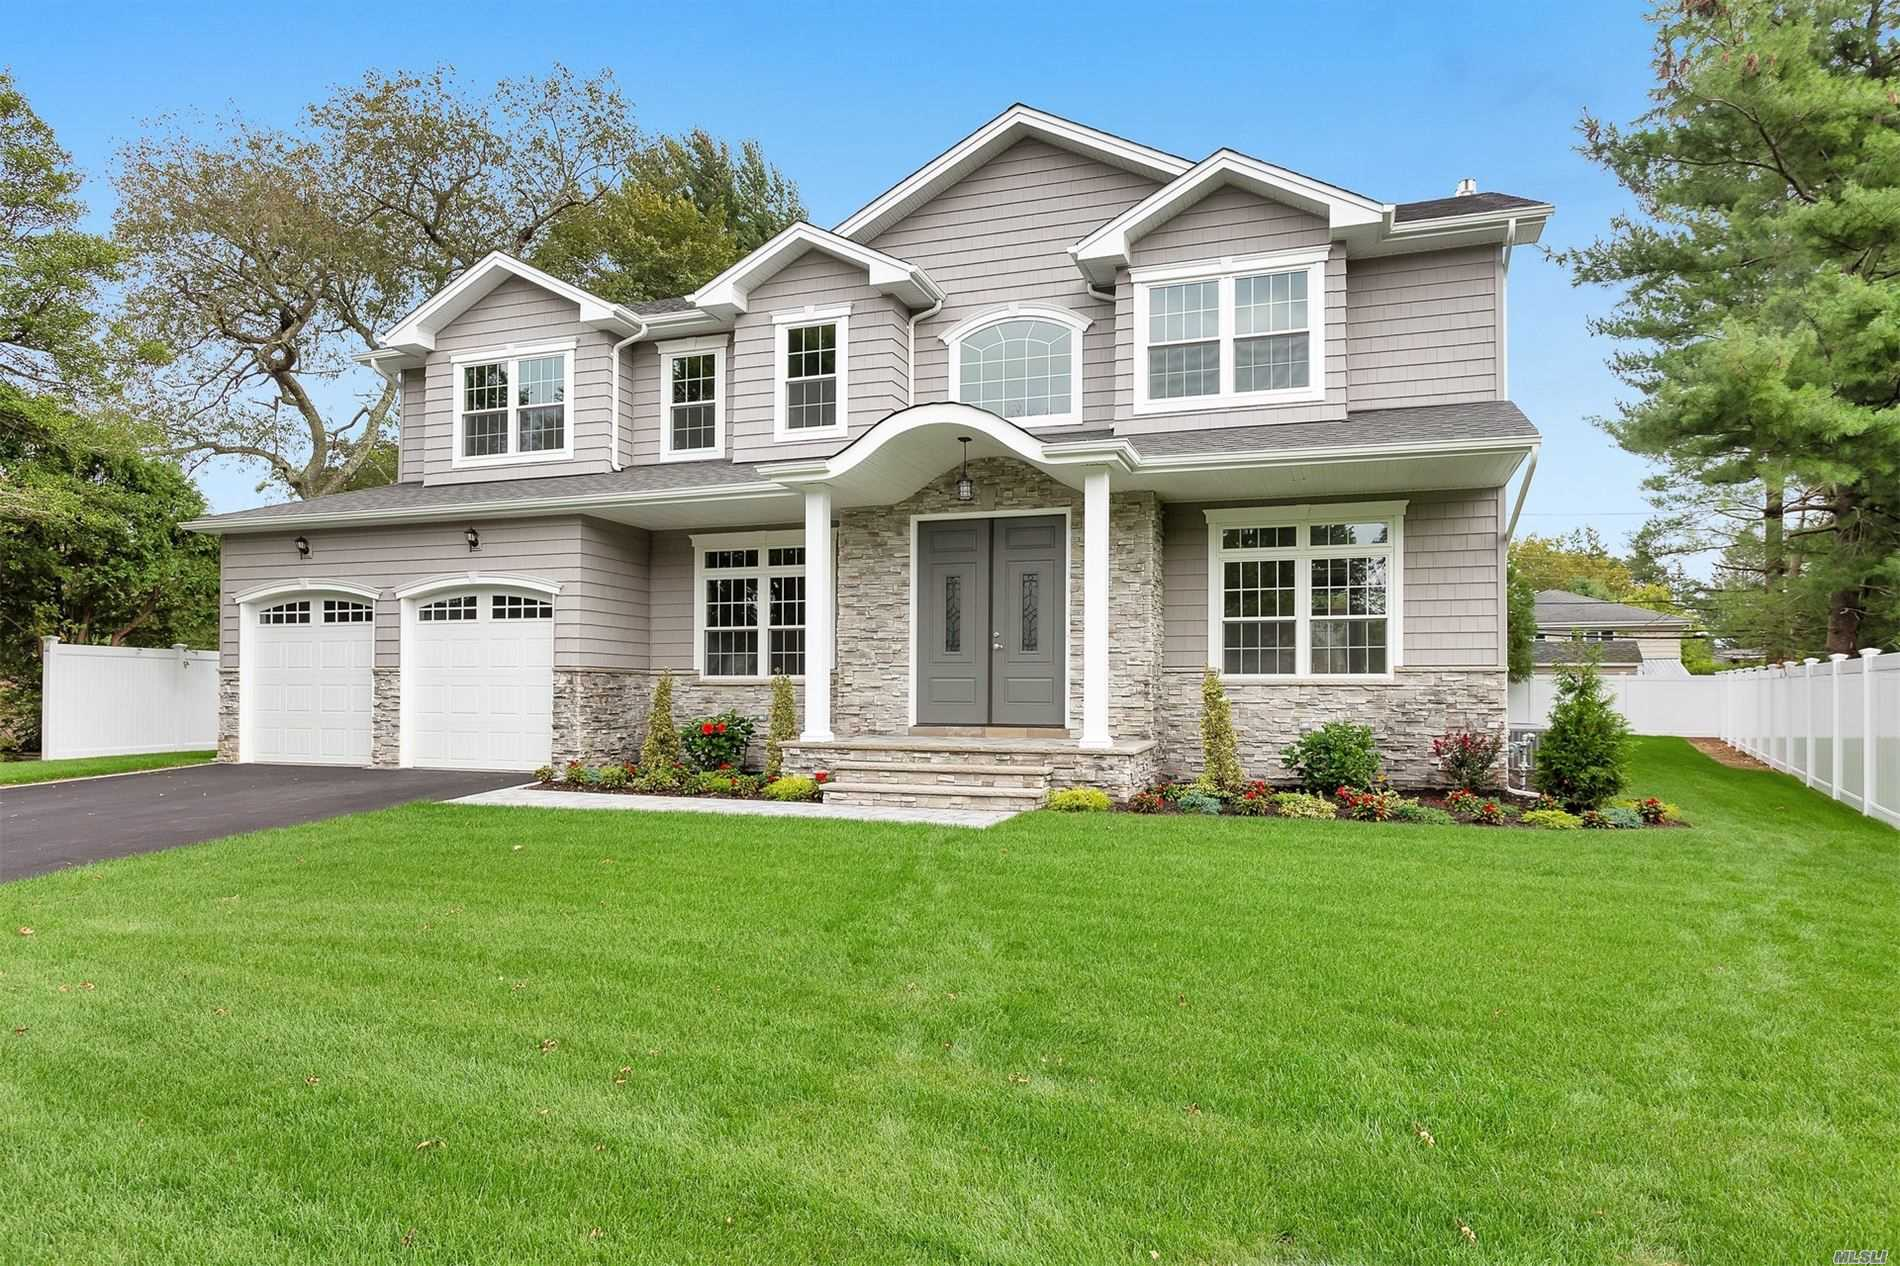 Prime North Syosset ! 3800 Sq Ft. Home Featuring Grand 2 Story Entrance, Hardwood Floors Throughout,  5 Bedrooms, 4.5 Bathrooms, , Sun-Filled Master Br W/Tray Ceiling- His + Hers Wic, Designer Kitchen W Center Island And Ss Appliances, Walk In Pantry, 1 Bedroom On Main Level W/ Full Bath- Den W/ Gas Fire Place - Full Basement W/ Ose. Fenced Back Yard .